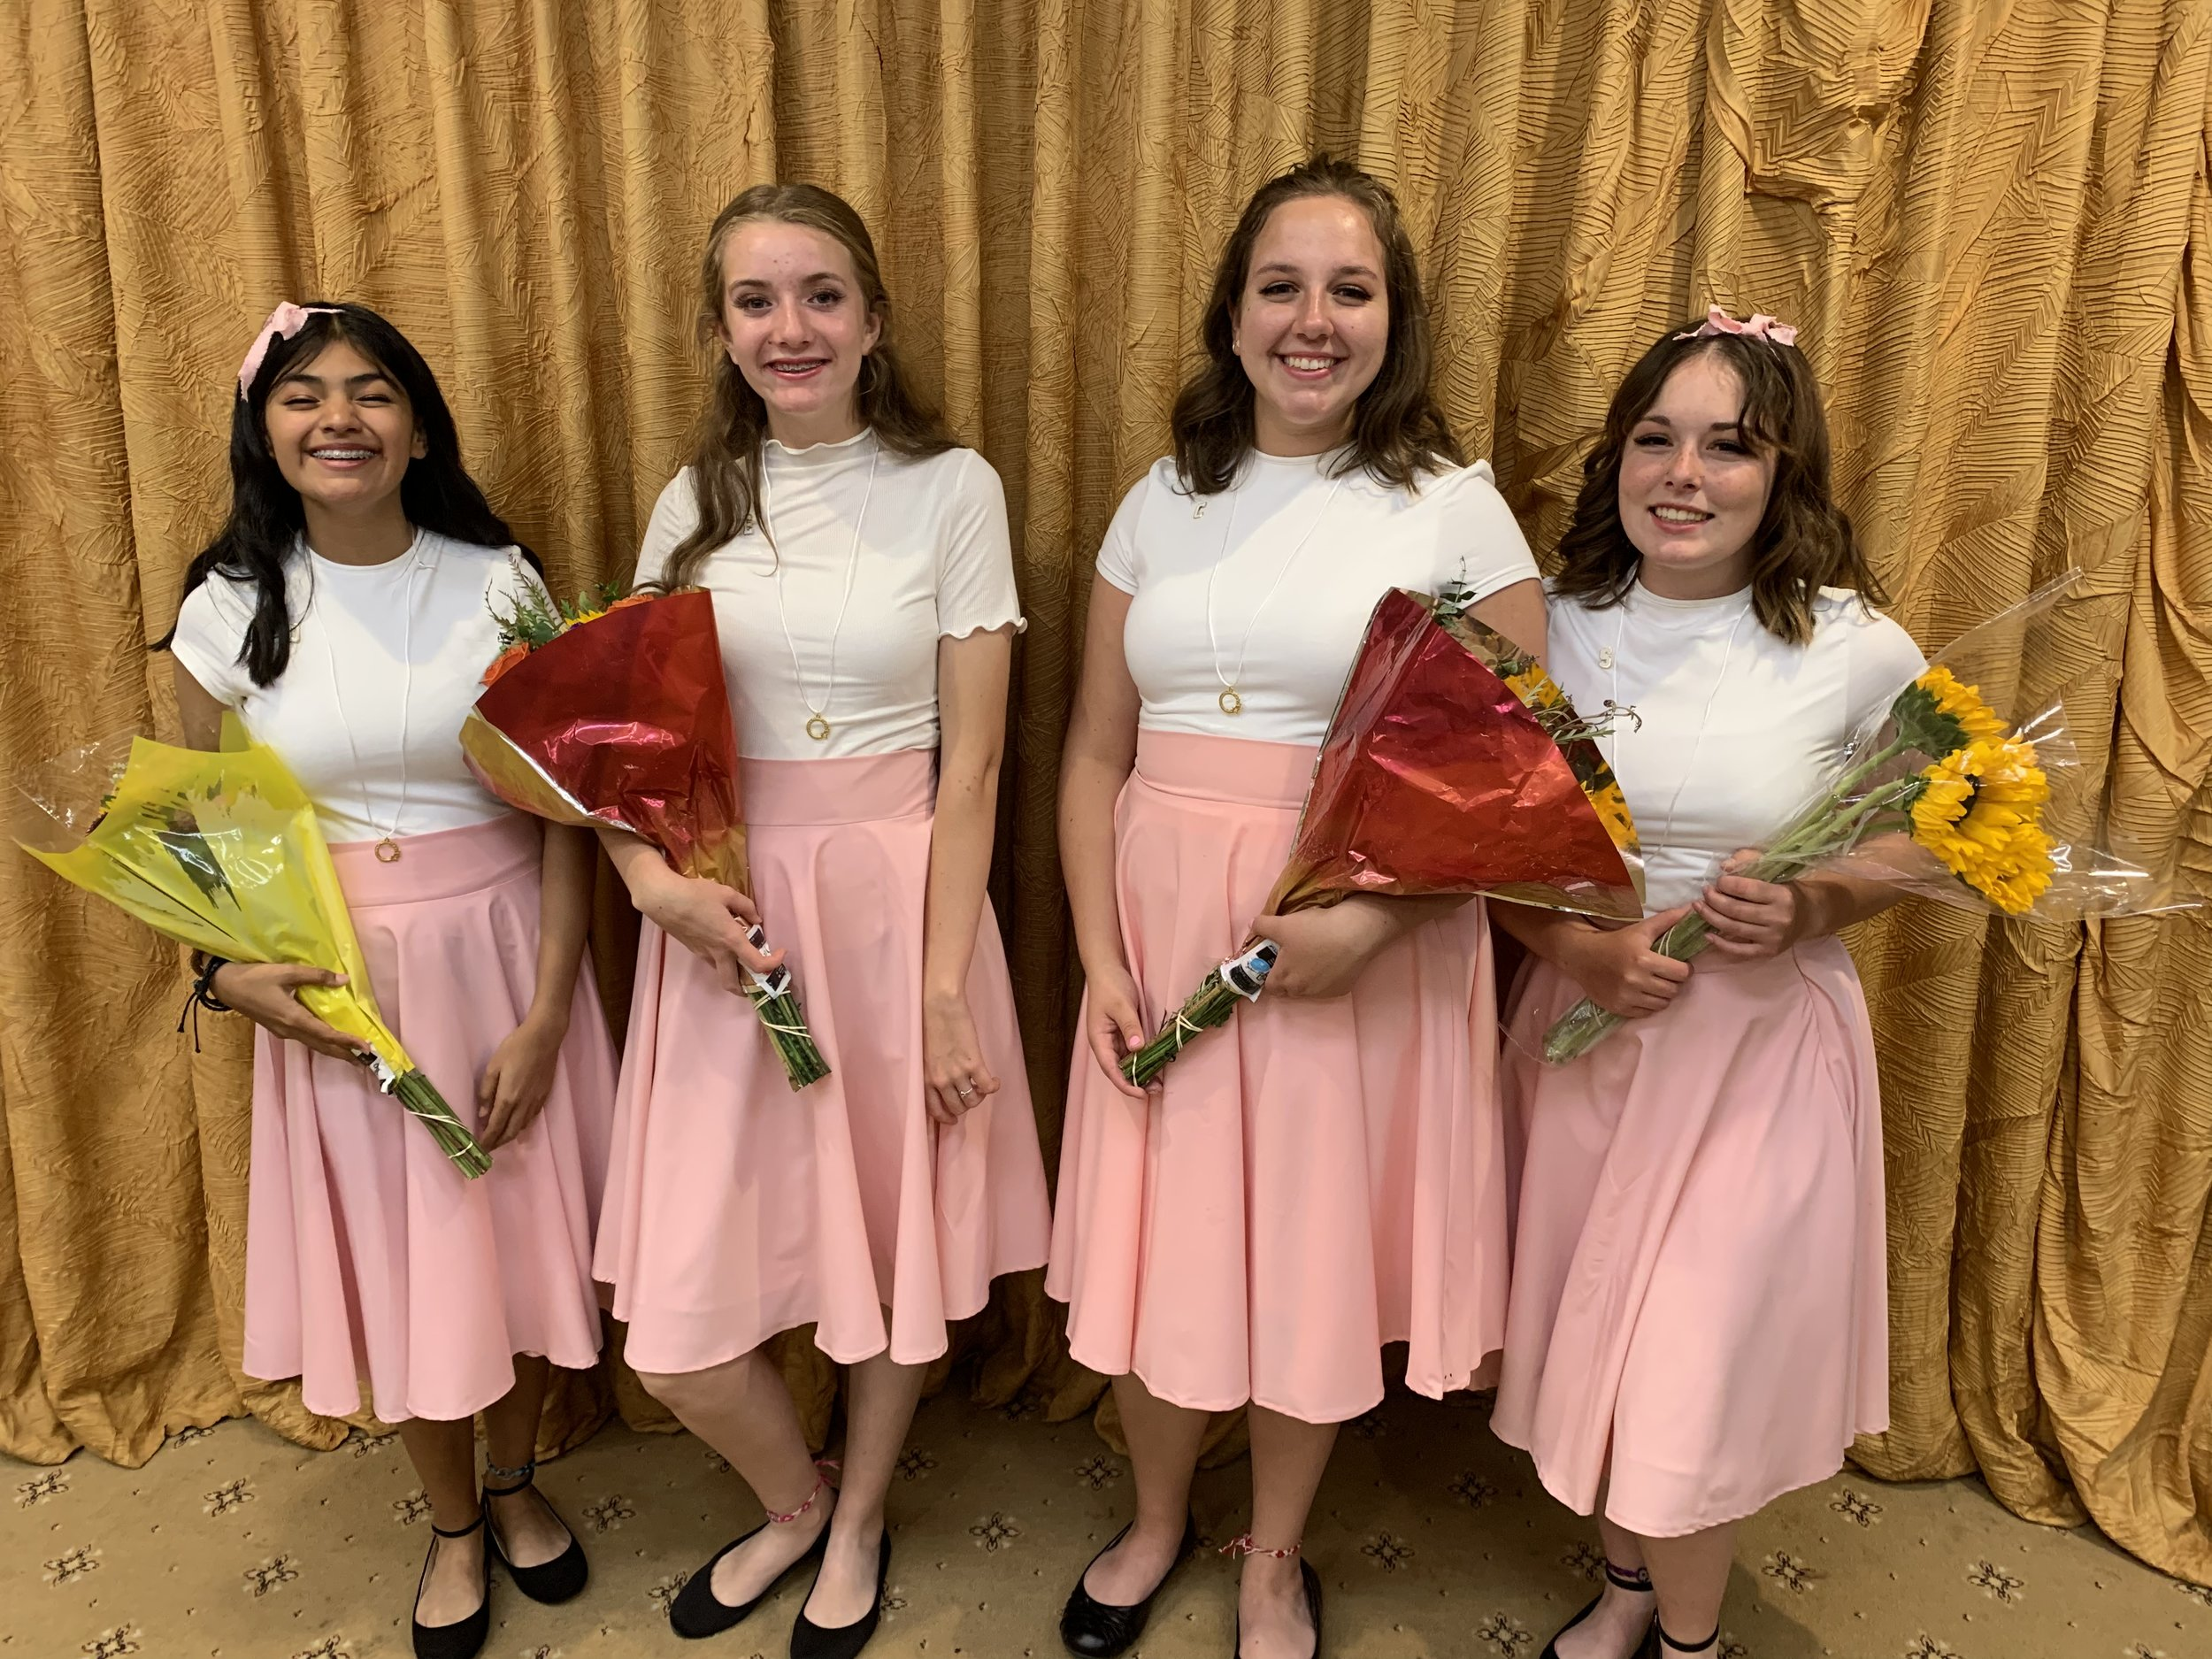 The Chordettes from Sultana High School won 3rd place in the Stars of the West contest in July 2019.